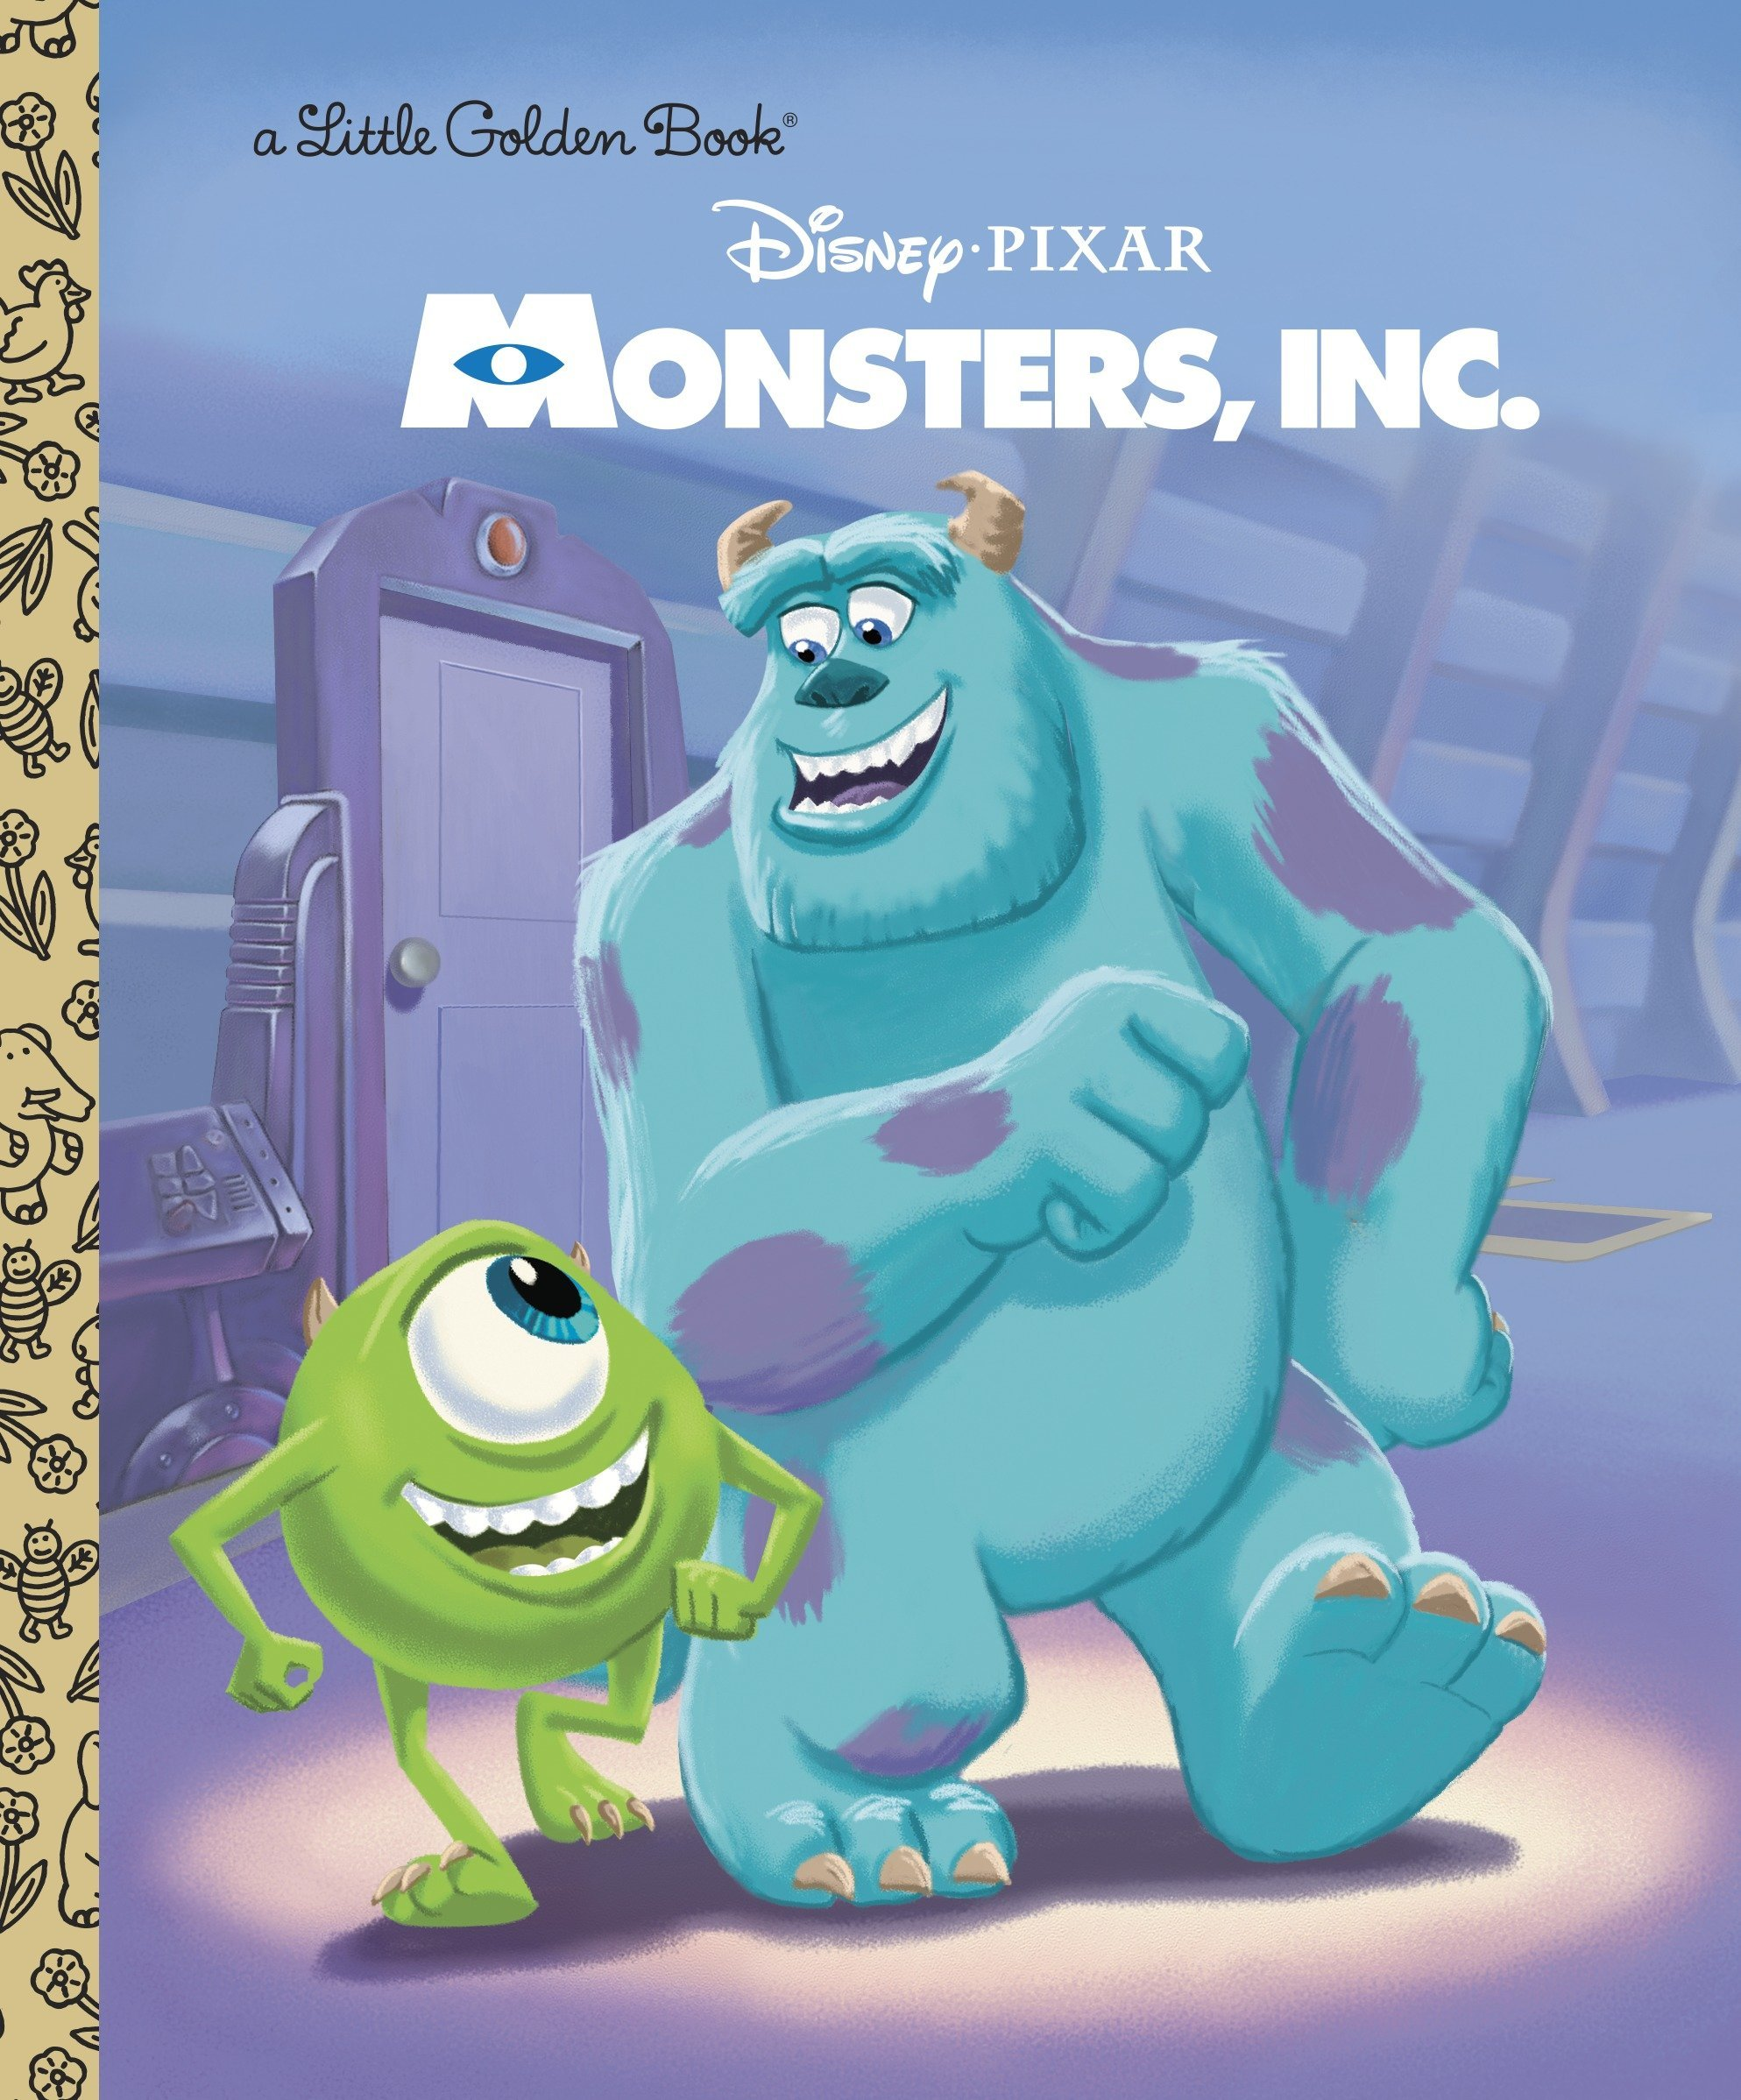 Monsters Inc Little Golden Book Disney Pixar Monsters Inc Rh Disney Rh Disney 9780736427999 Amazon Com Books